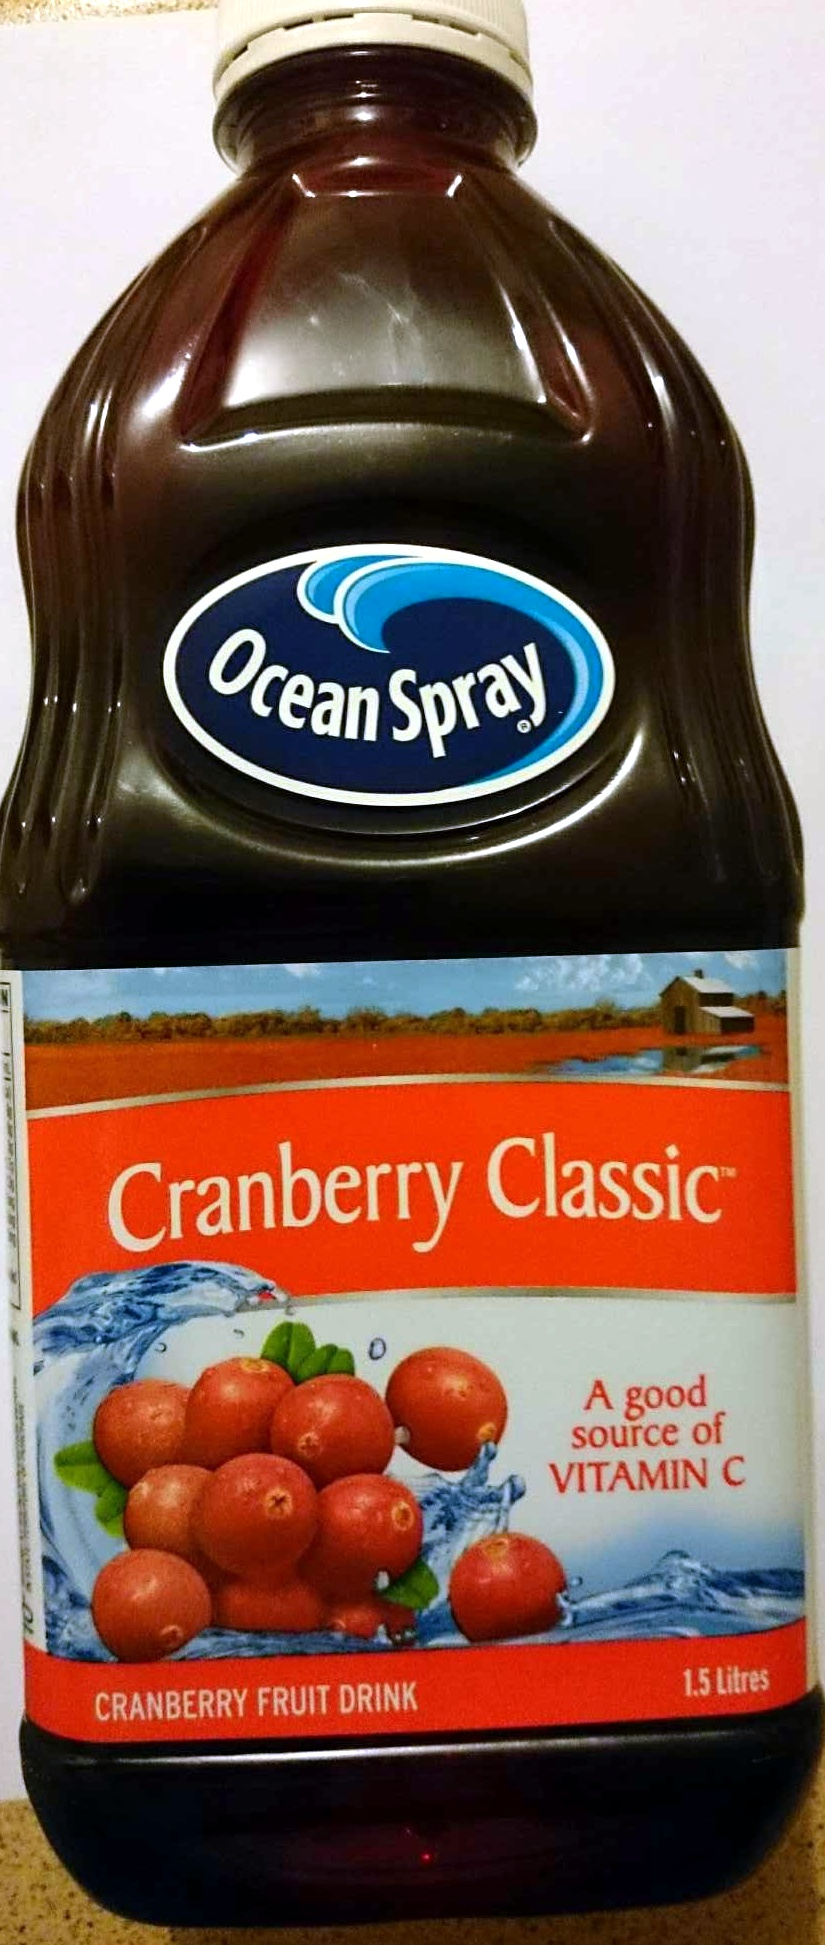 Cranberry Classic - Product